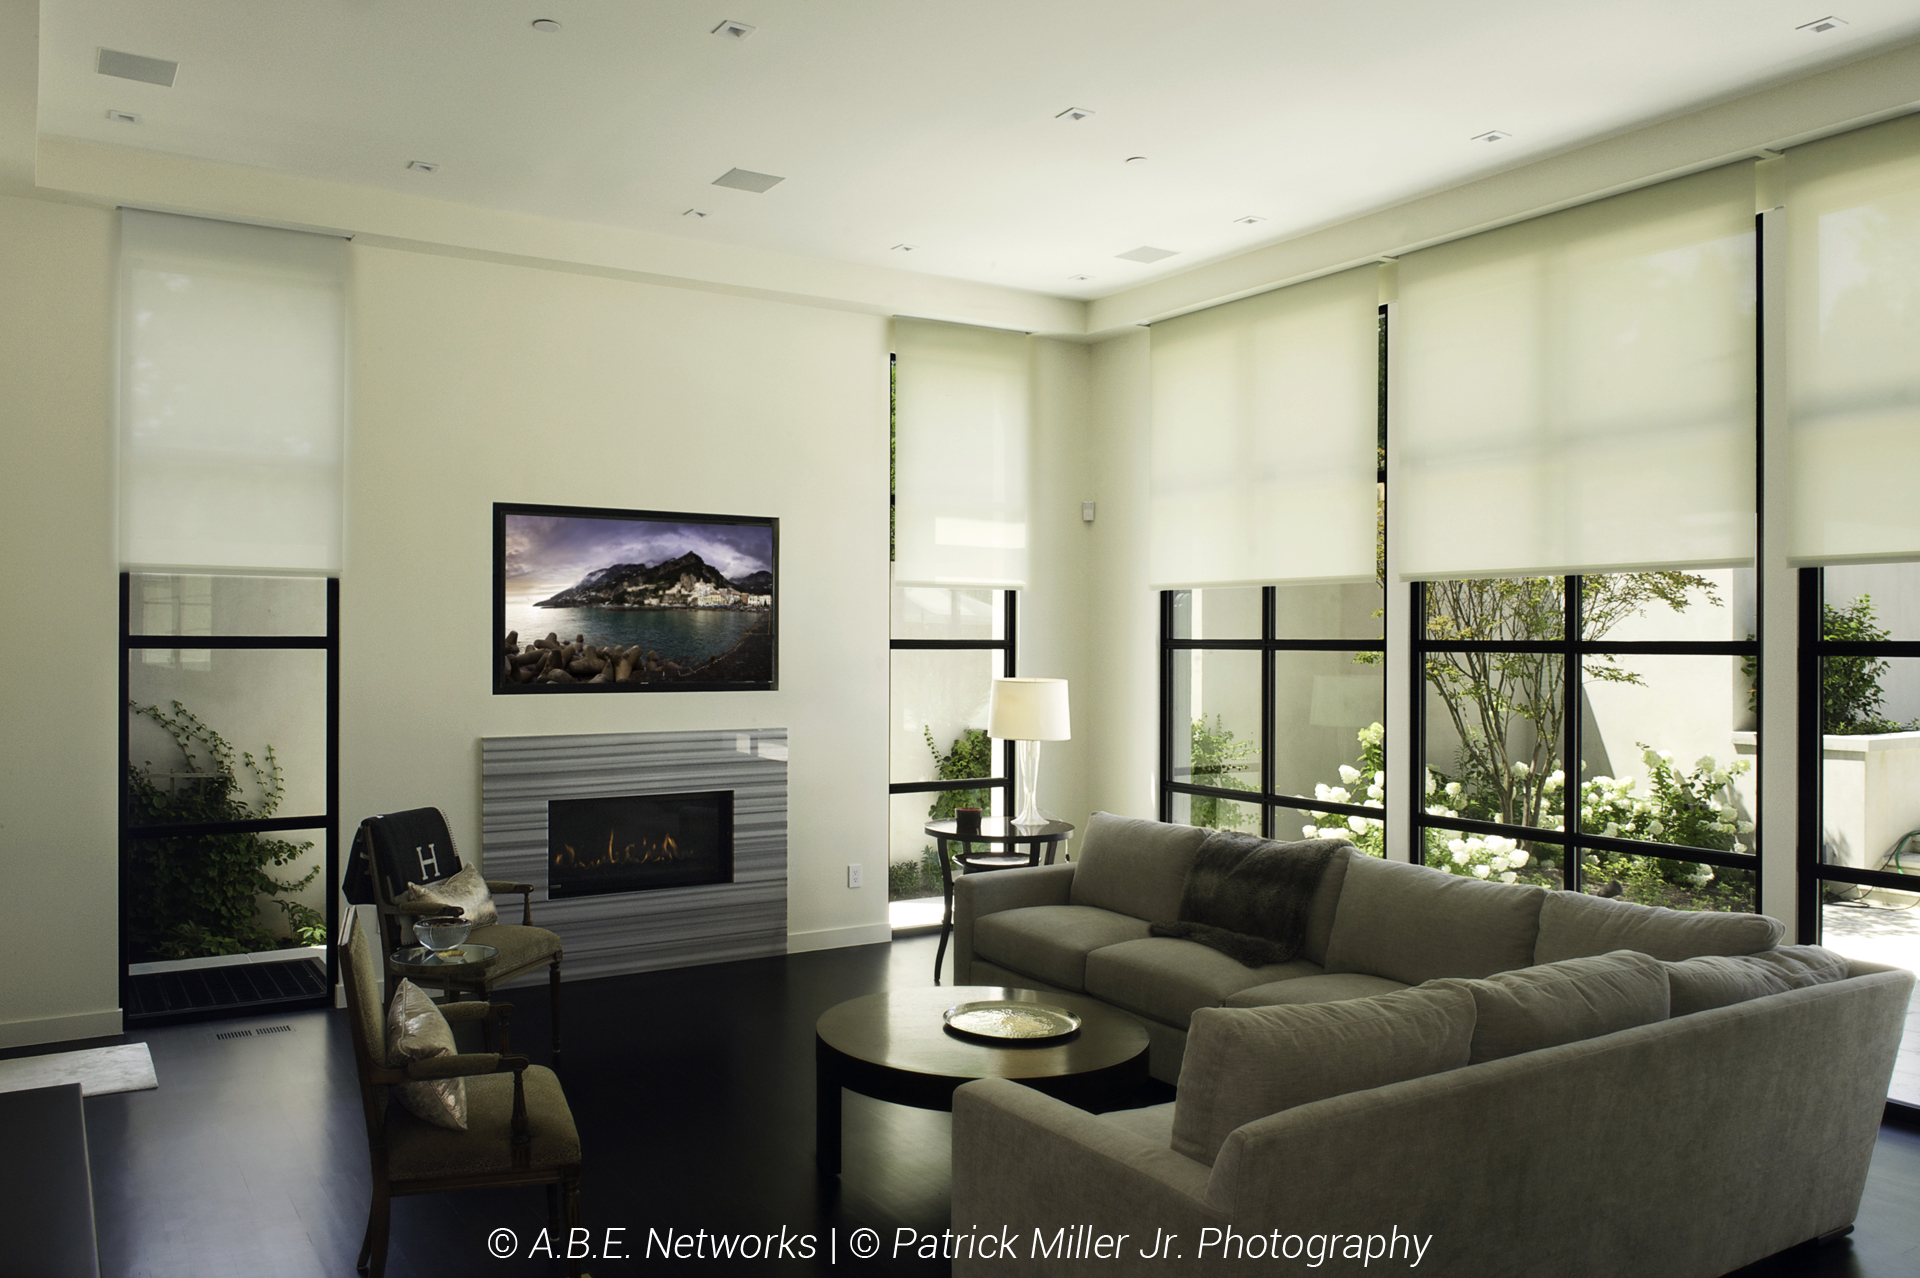 Sonance In-Ceiling Architectural Speakers_In-Wall Niche TV_Lutron Smart Home Lights and Shades_Mid